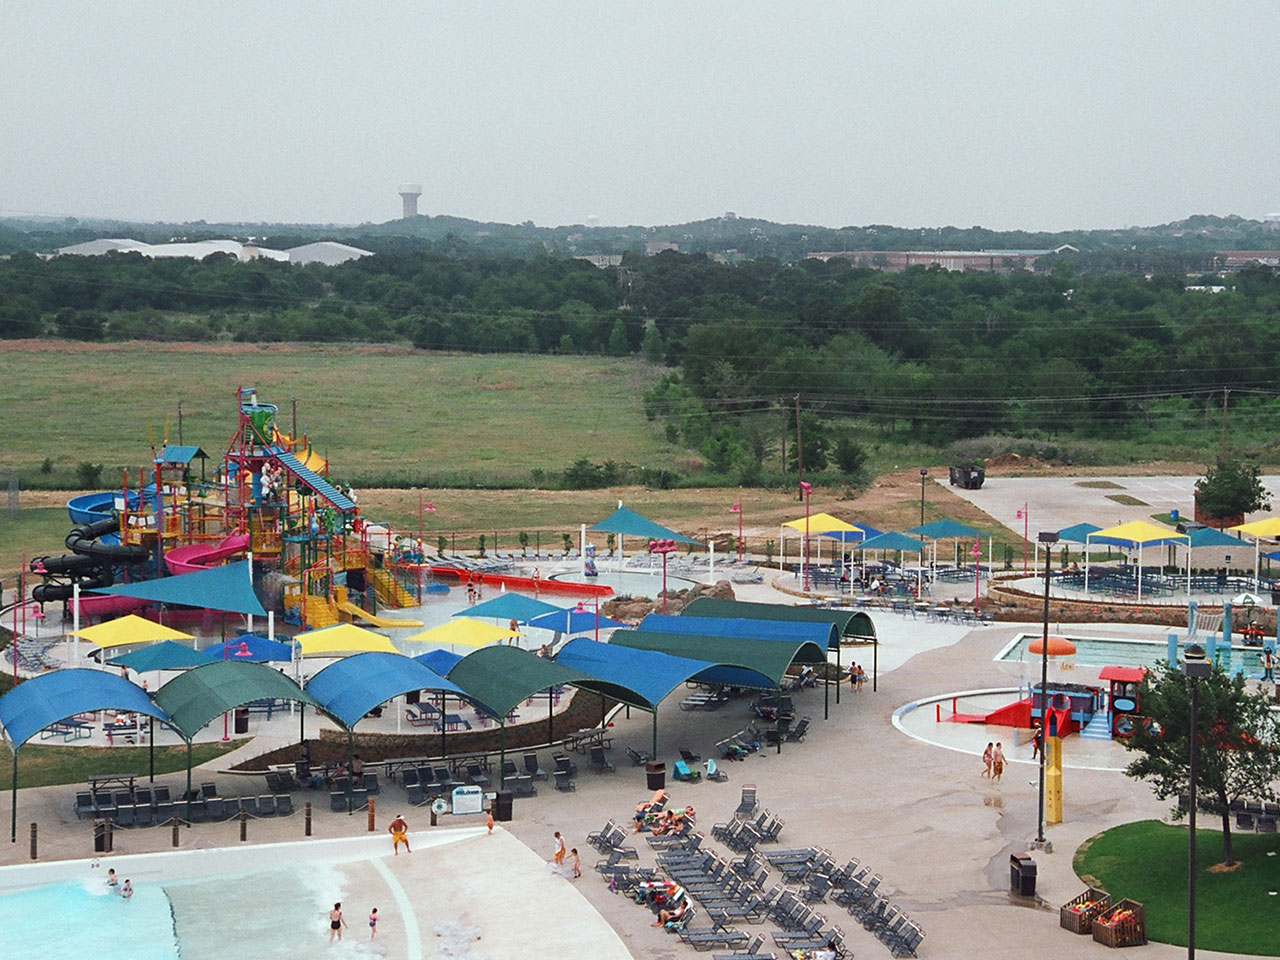 Water Park Shade Structures - NRH2O Family Water Park